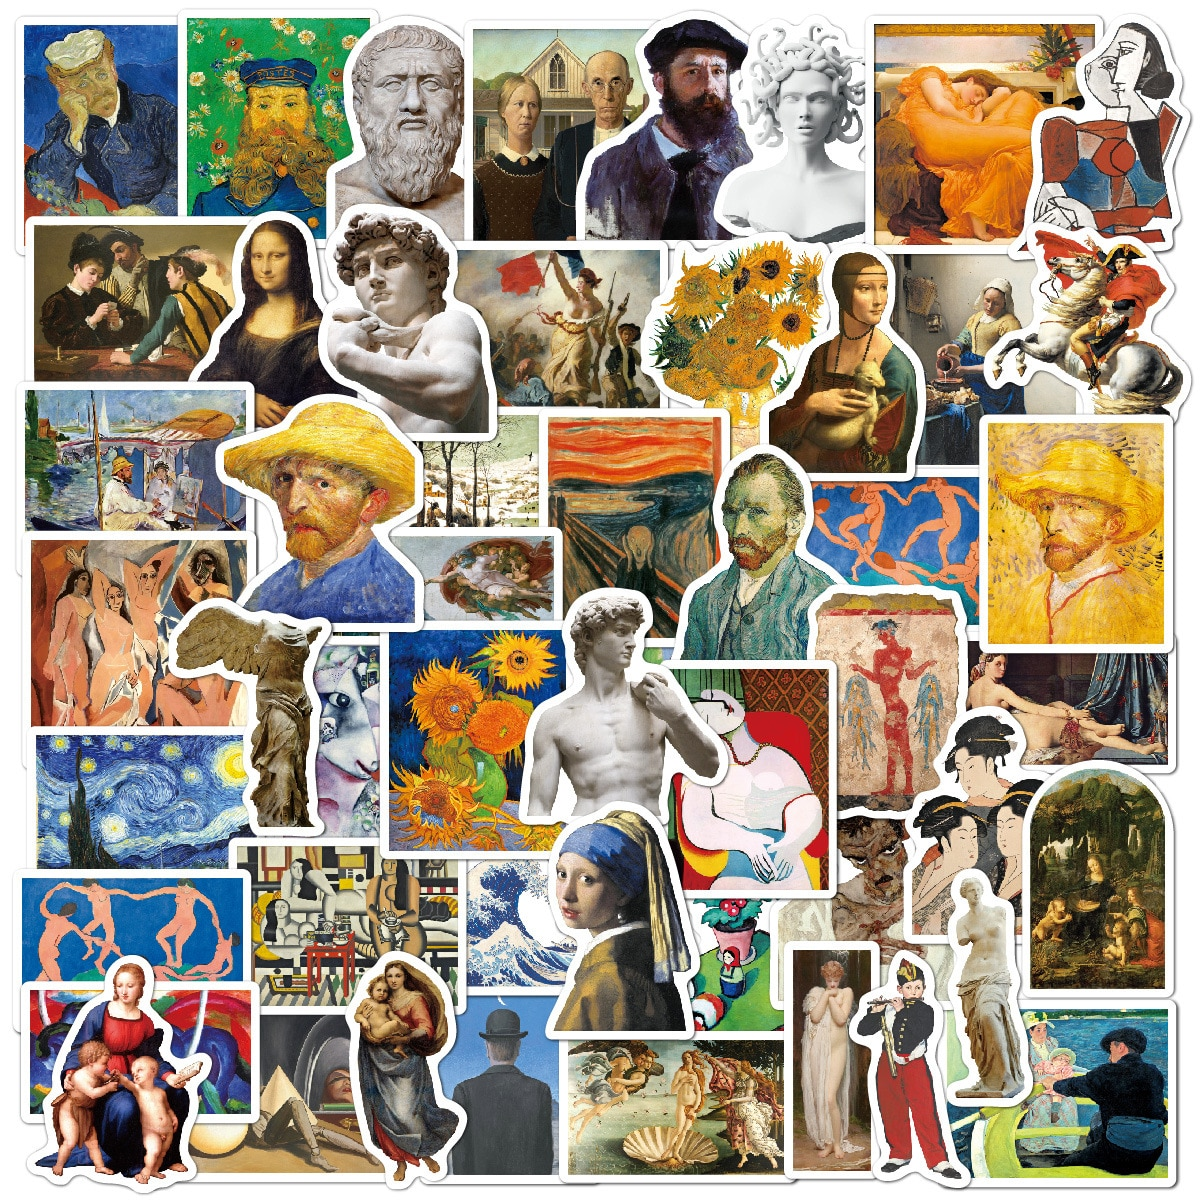 52 Piece Not Repeat Sticker Oil Painting Art Van Gogh Mona Lisa Stickers For Car Guitar Laptop Macbook Luggage Skateboard Decals